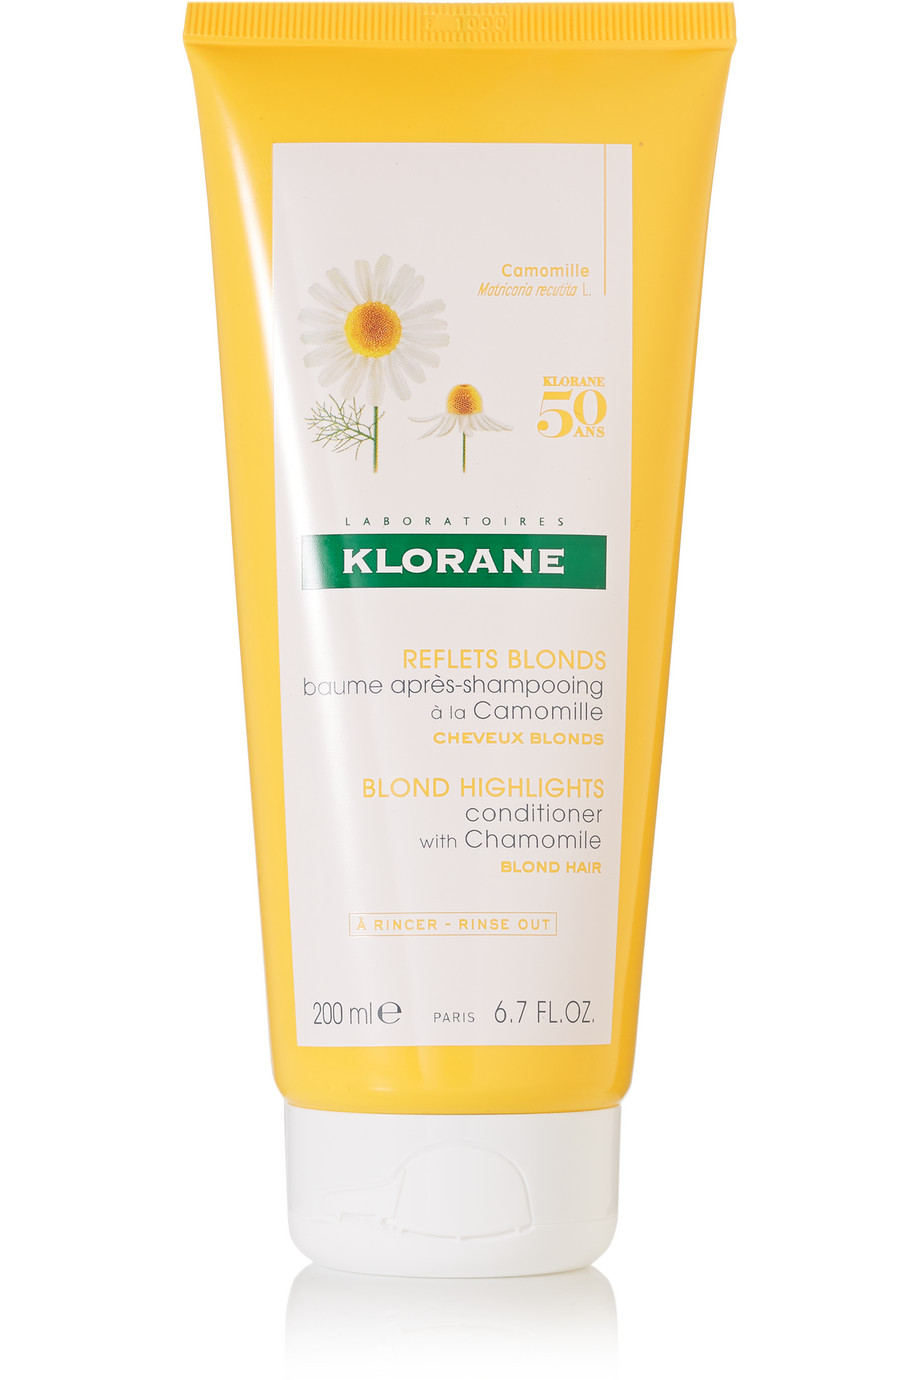 Blond Highlights Conditioner With Chamomile, 200ml, by Klorane